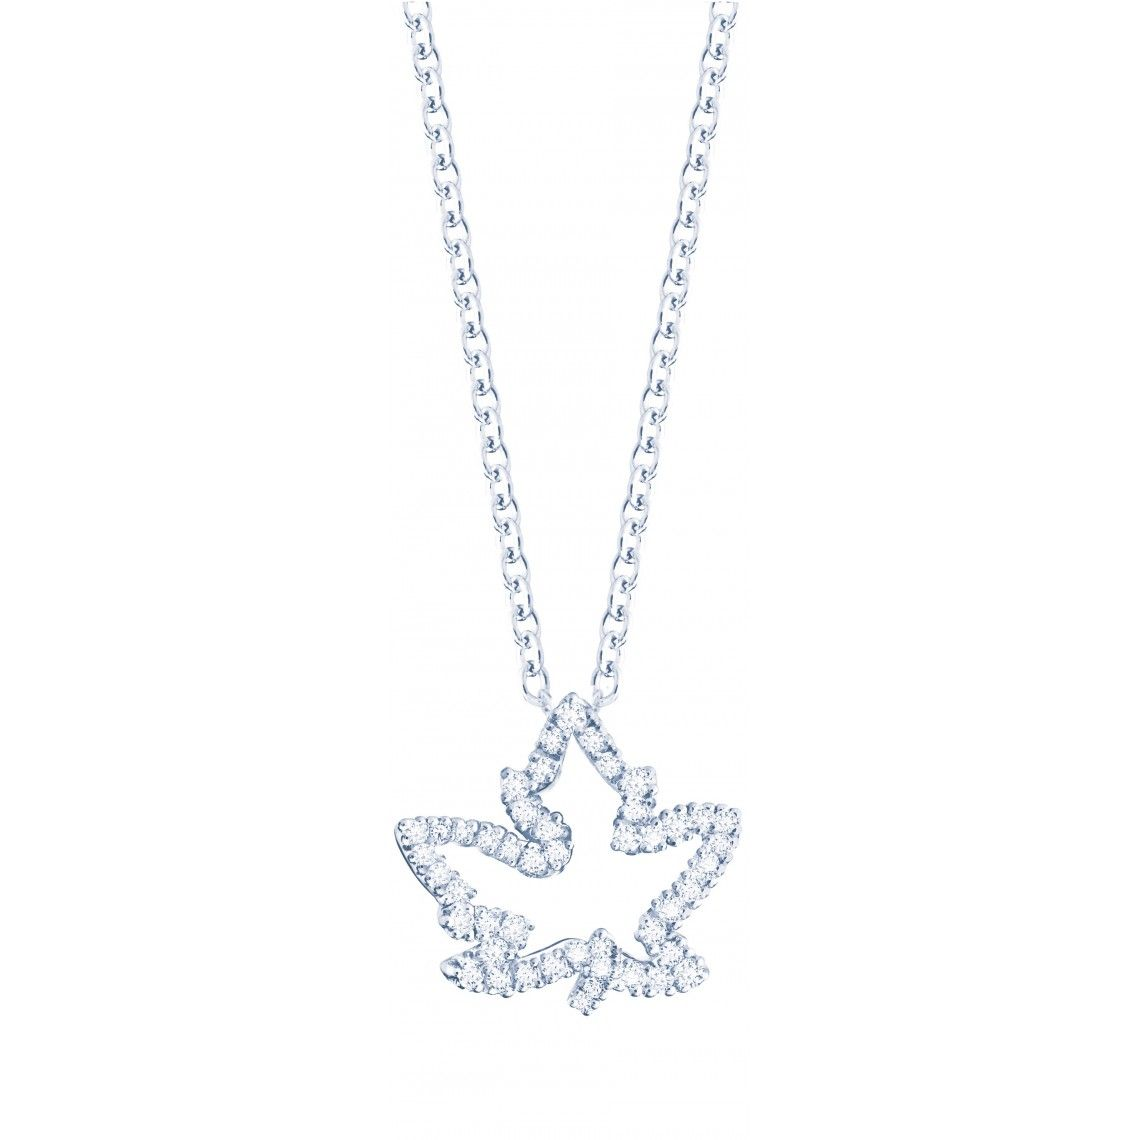 Birks Les Plaisirs de Birks Maple Leaf Pendant with Pavé Diamonds